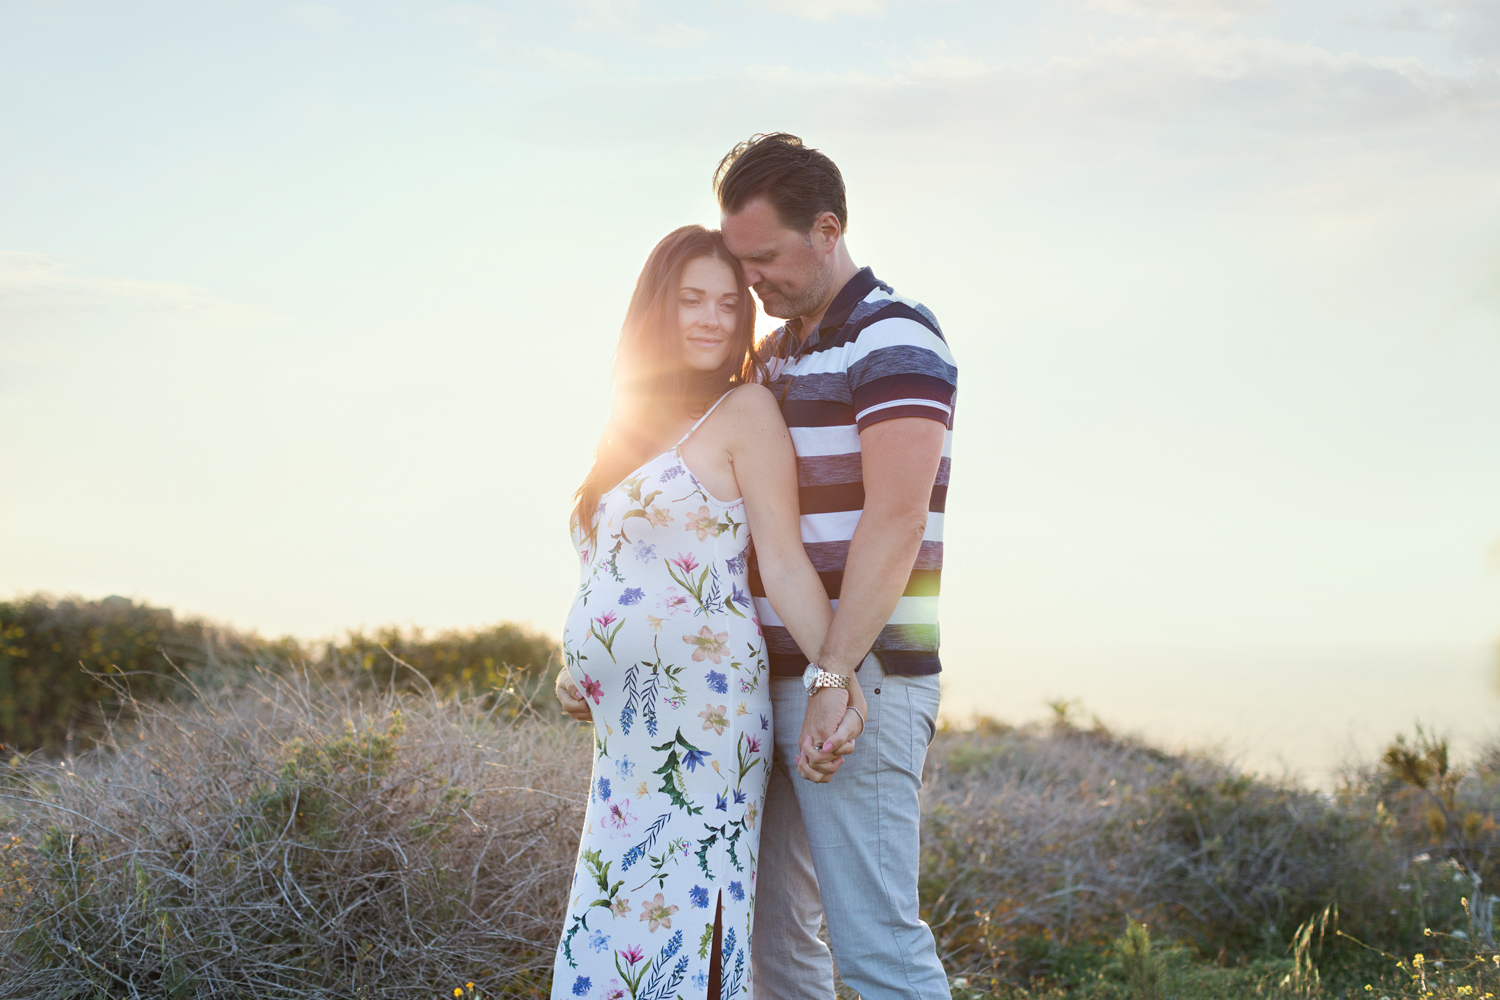 riviera bay couple in love maternity dress holding hands sunset maternity shoot malta expecting parents